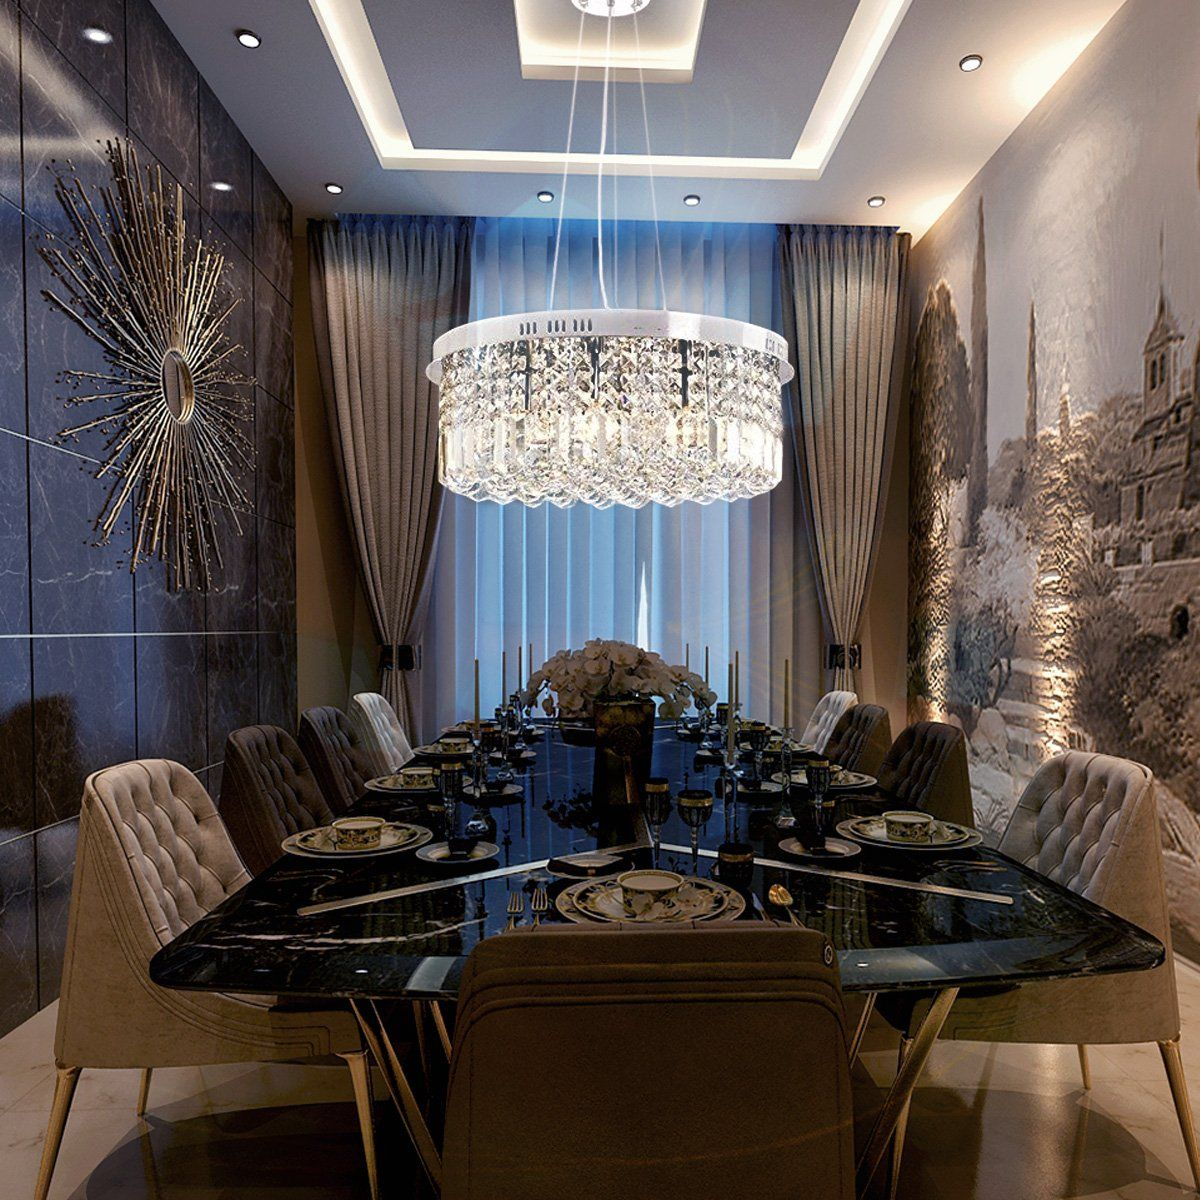 Modern Round Drum Crystal Chandelier Crystal Chandelier Dining Room Dining Room Pendant Dining Room Chandelier